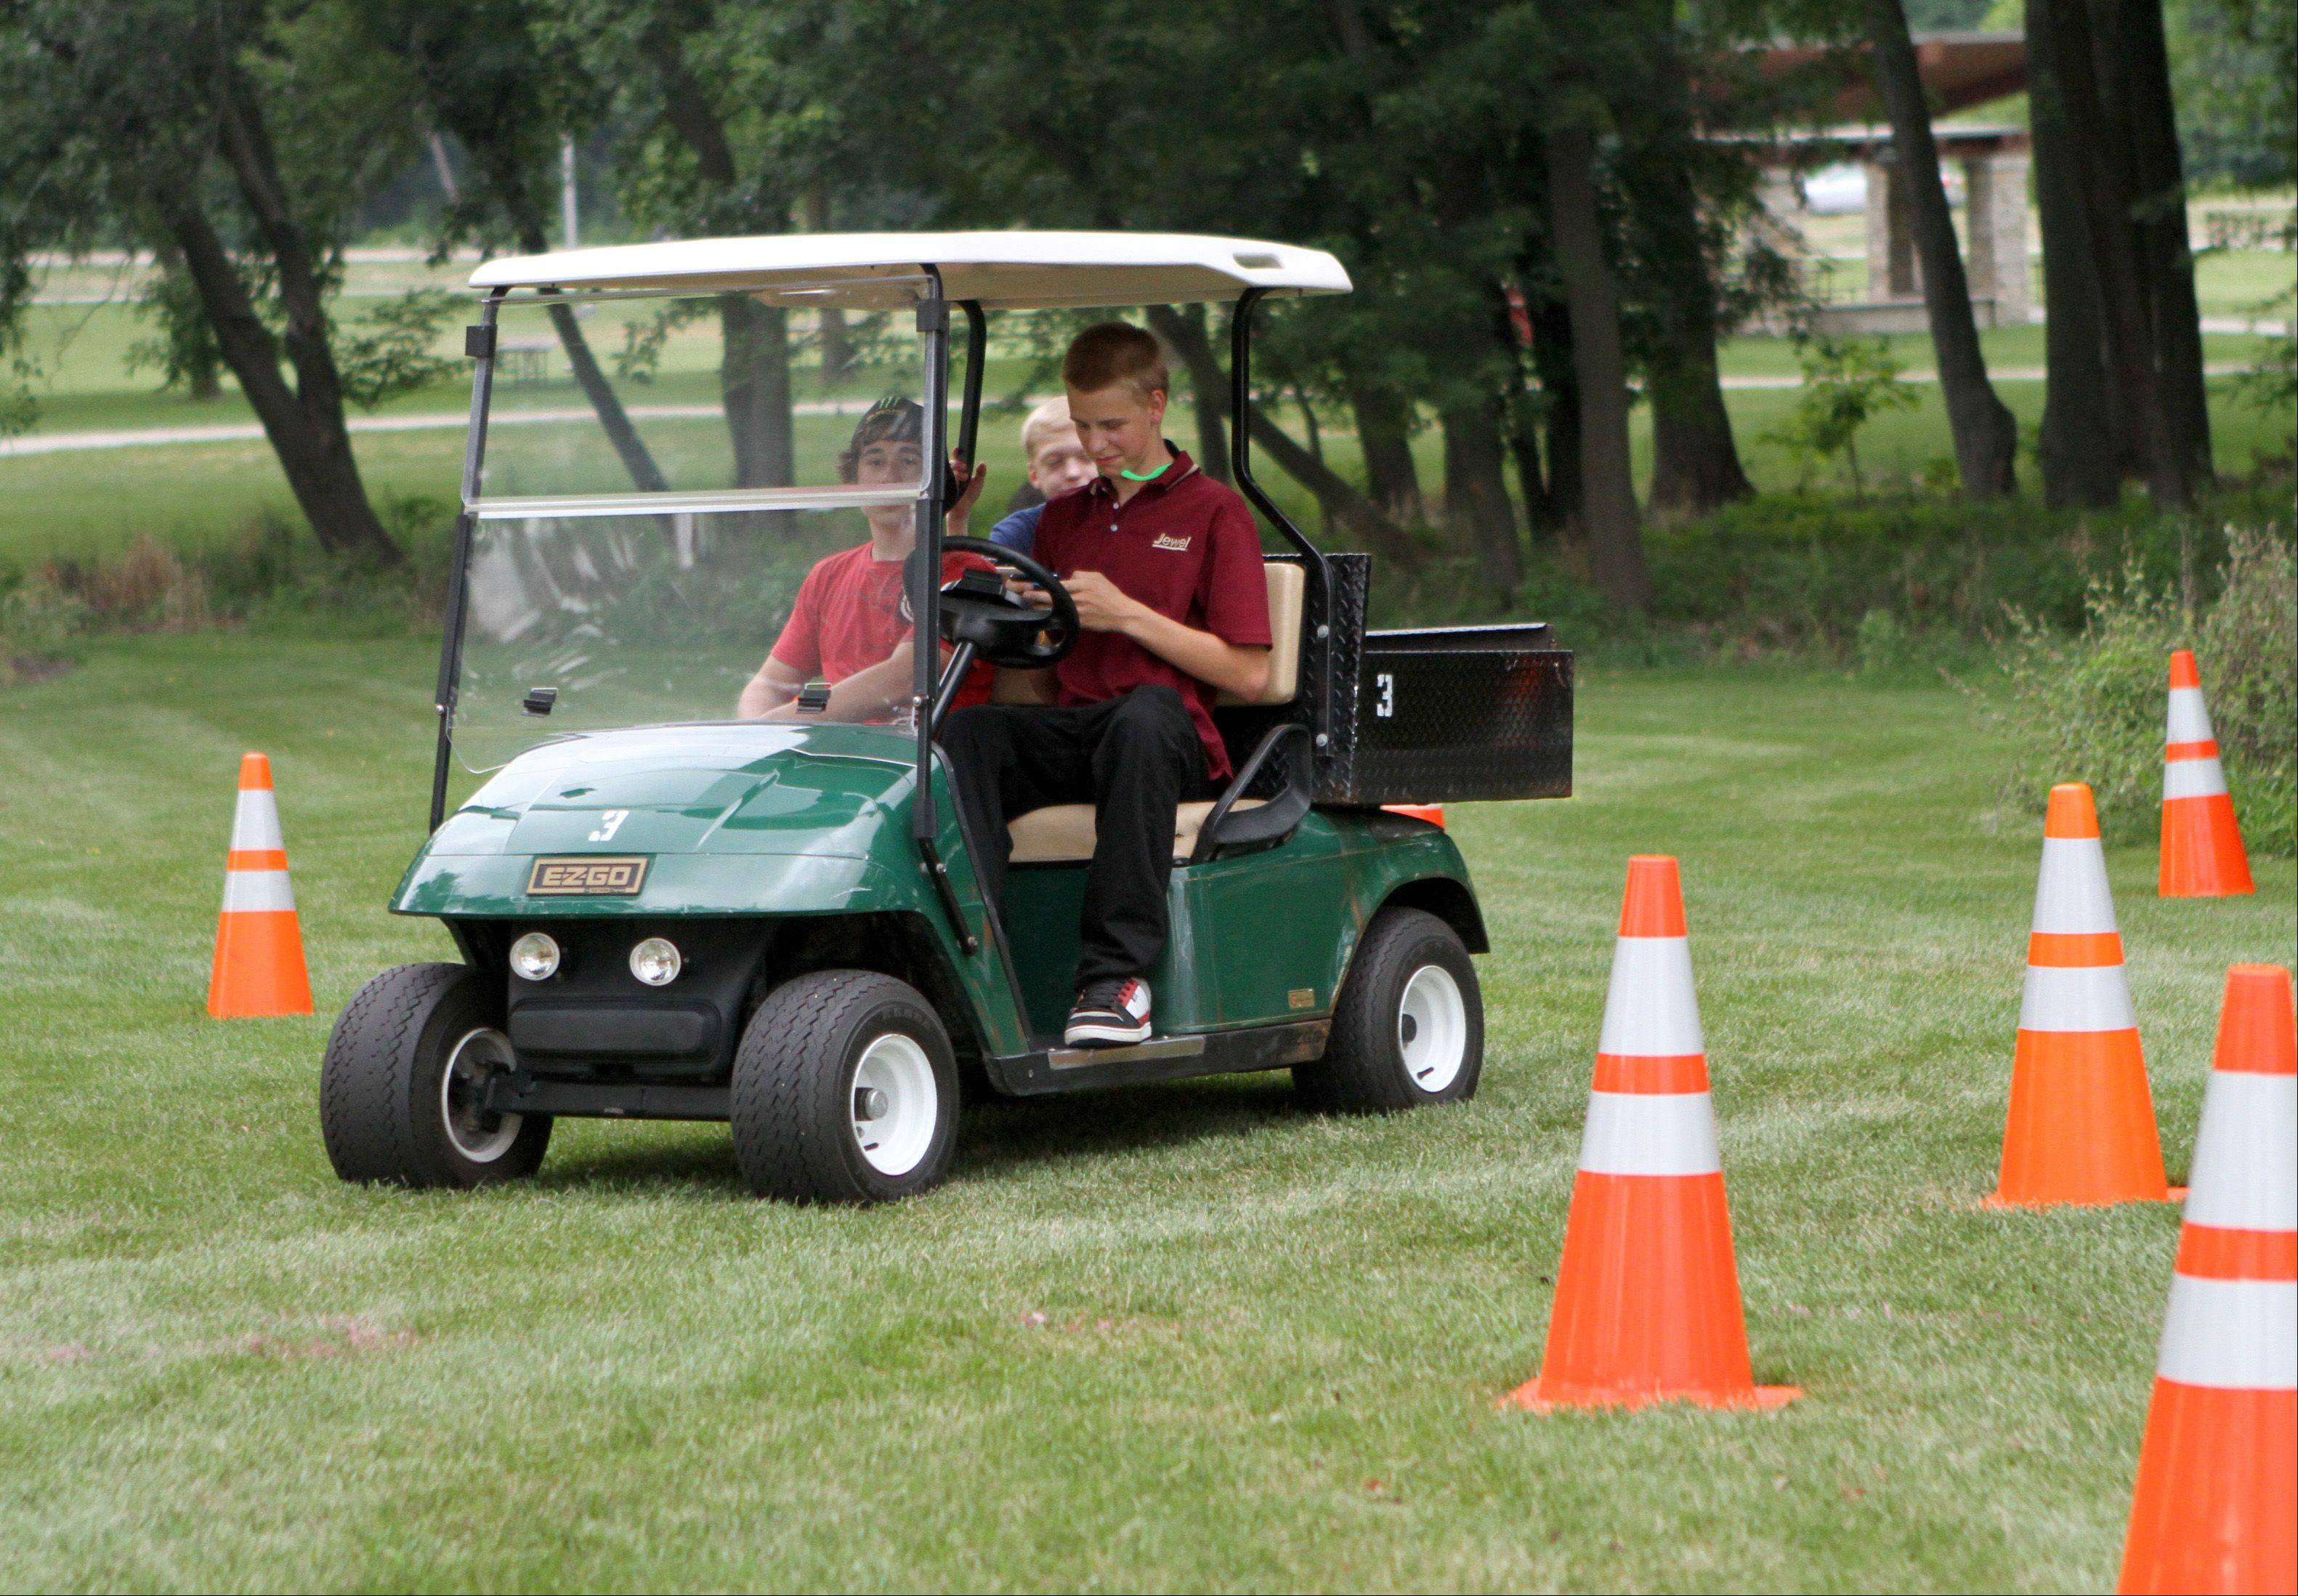 Chase Arbuthnot, 16, right, from Barrington tries to text while driving a golf cart on a setup course at the National Night Out at Citizens Park in Barrington. Dominic Calabres, 15, left, from Barrington also tried the course.